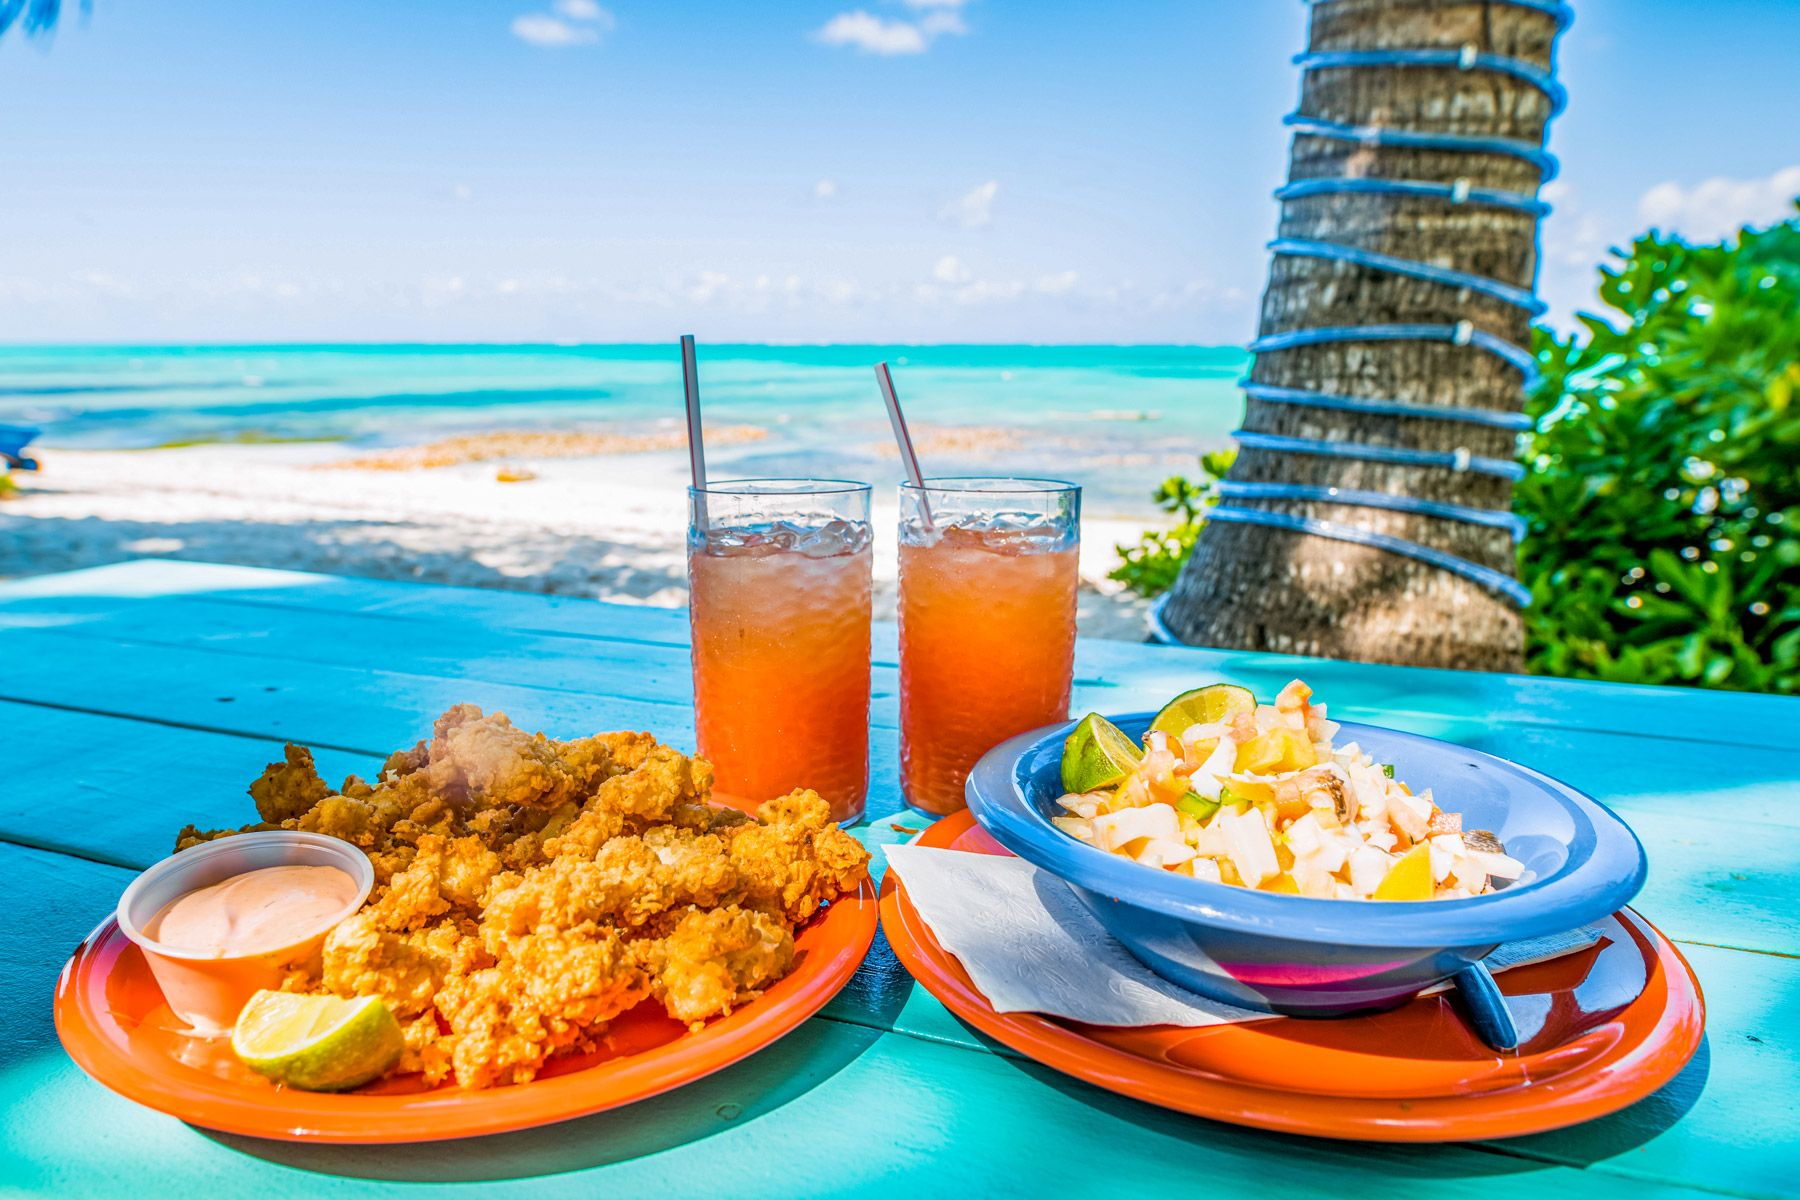 Conch fritters conch salad with punch